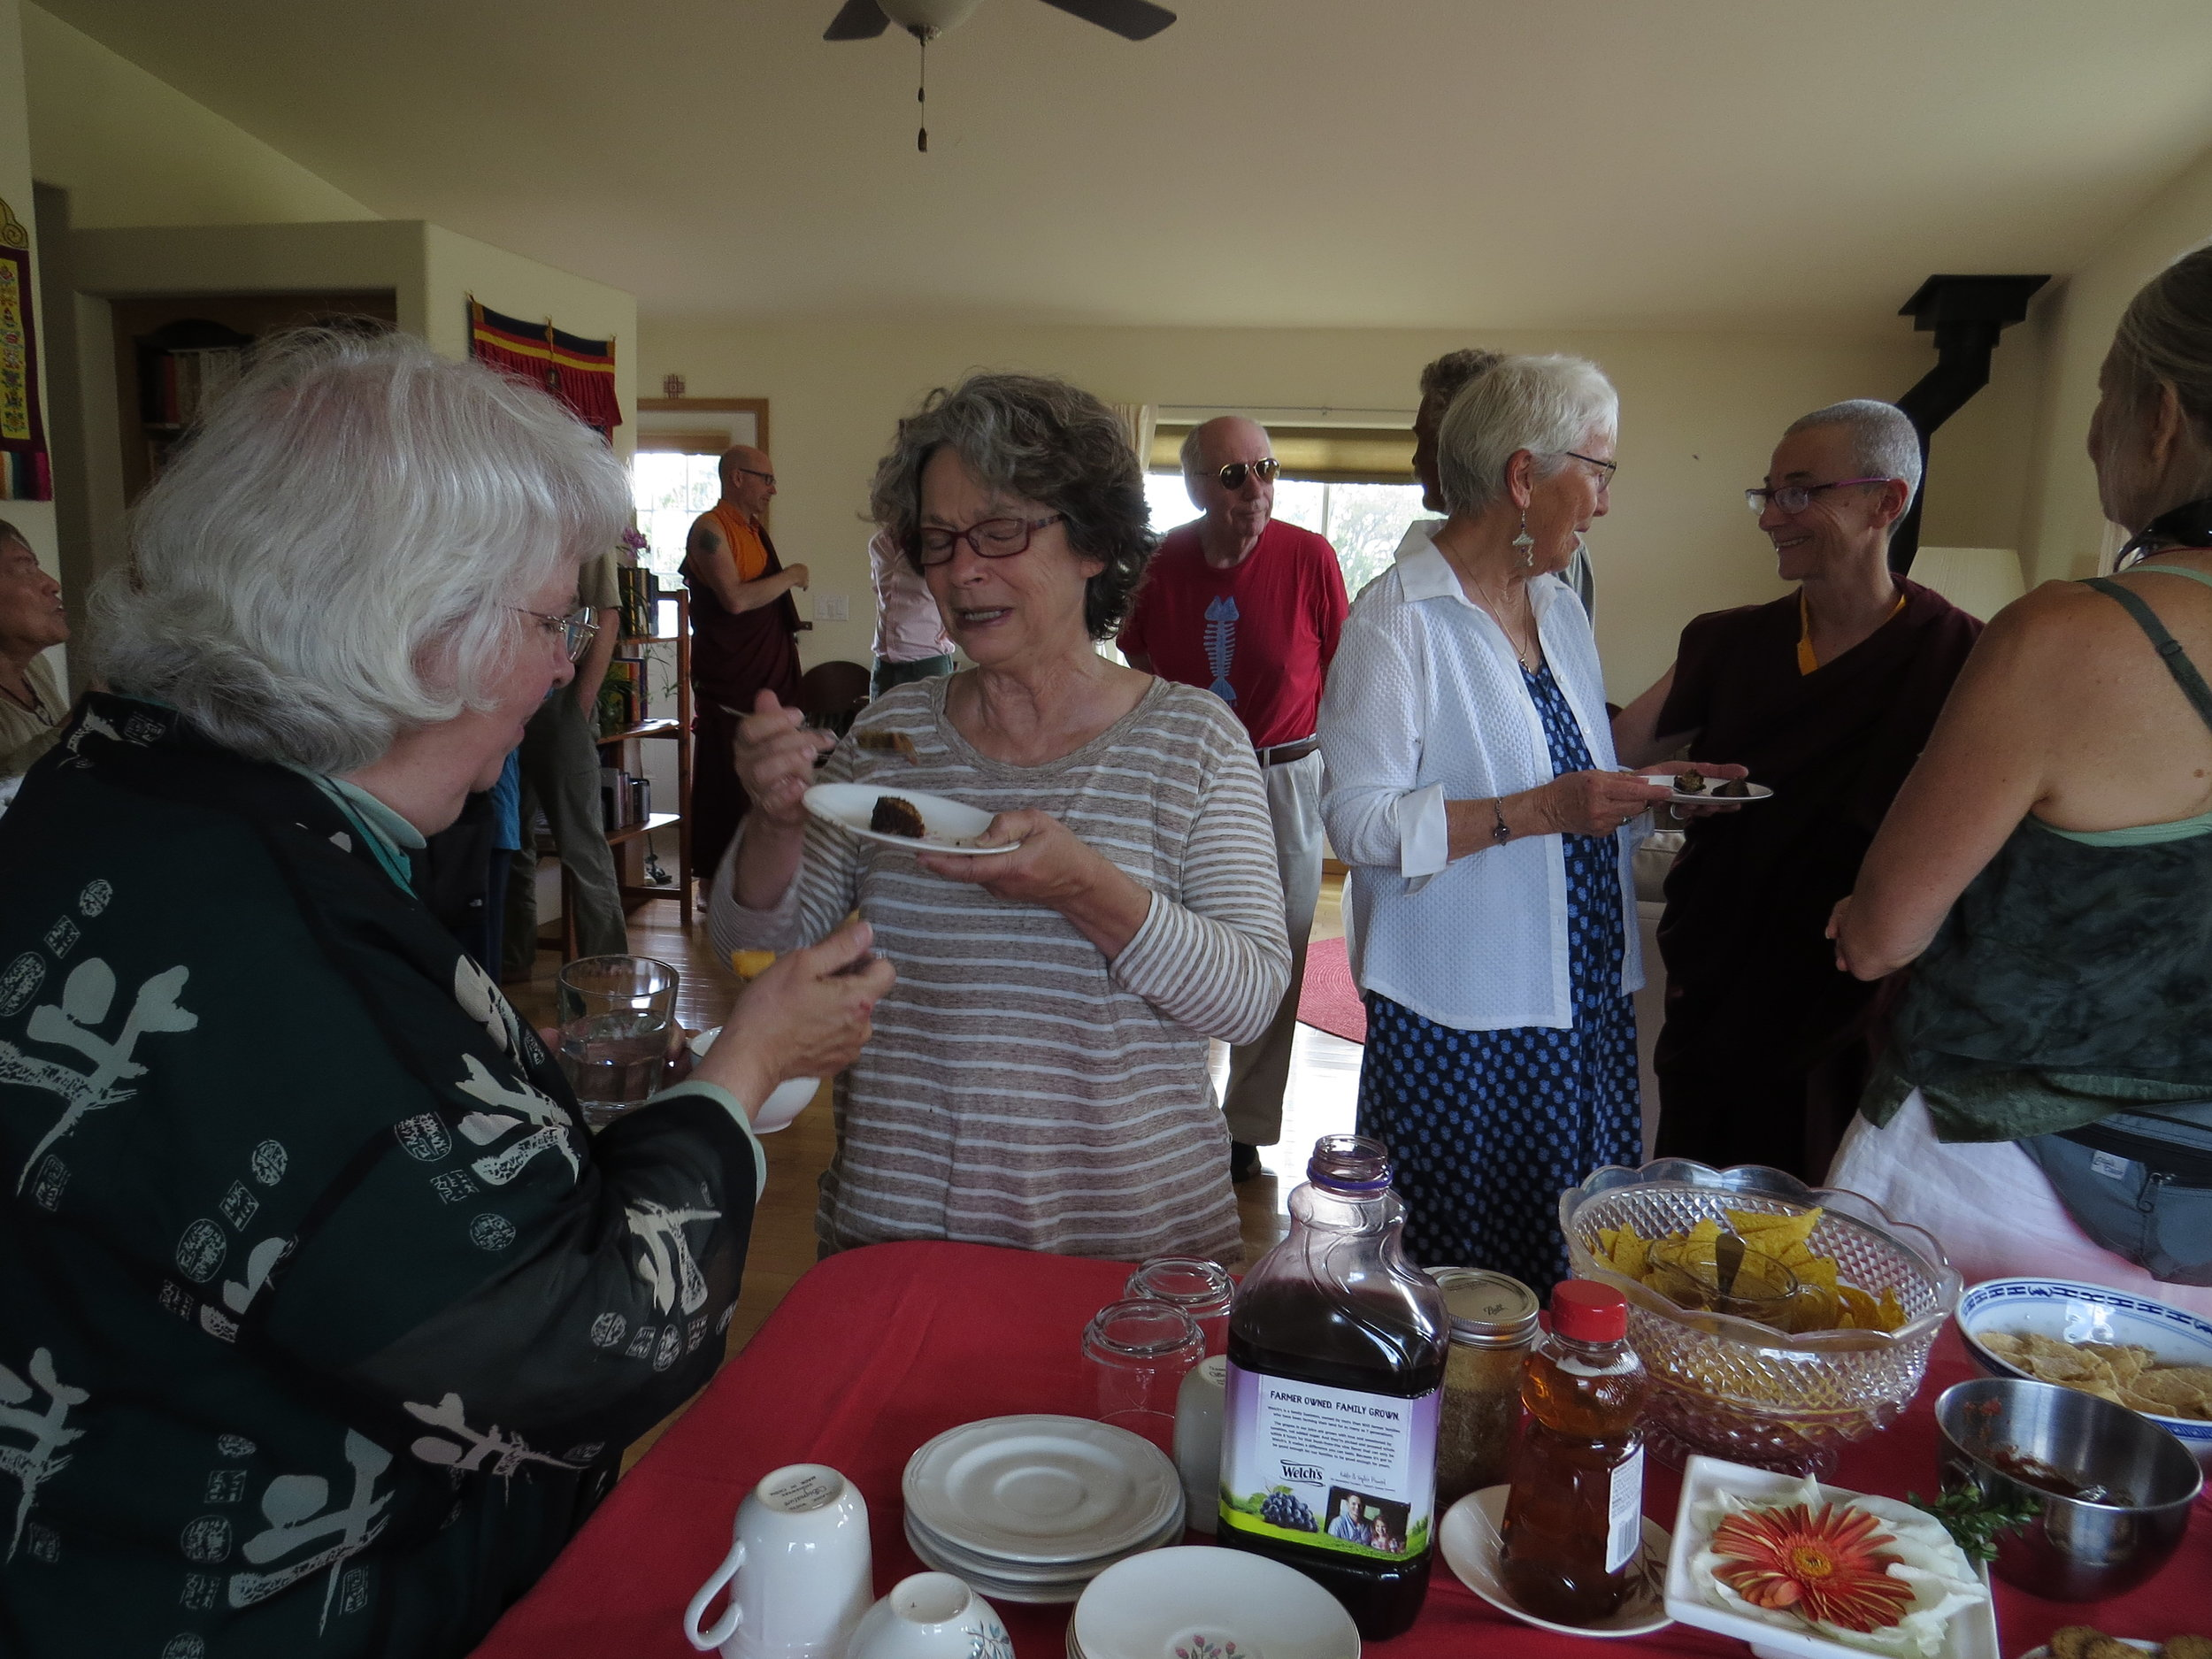 Visitors to the Pema Chöling Open House enjoy refreshments while getting to know the resident and local monastics.